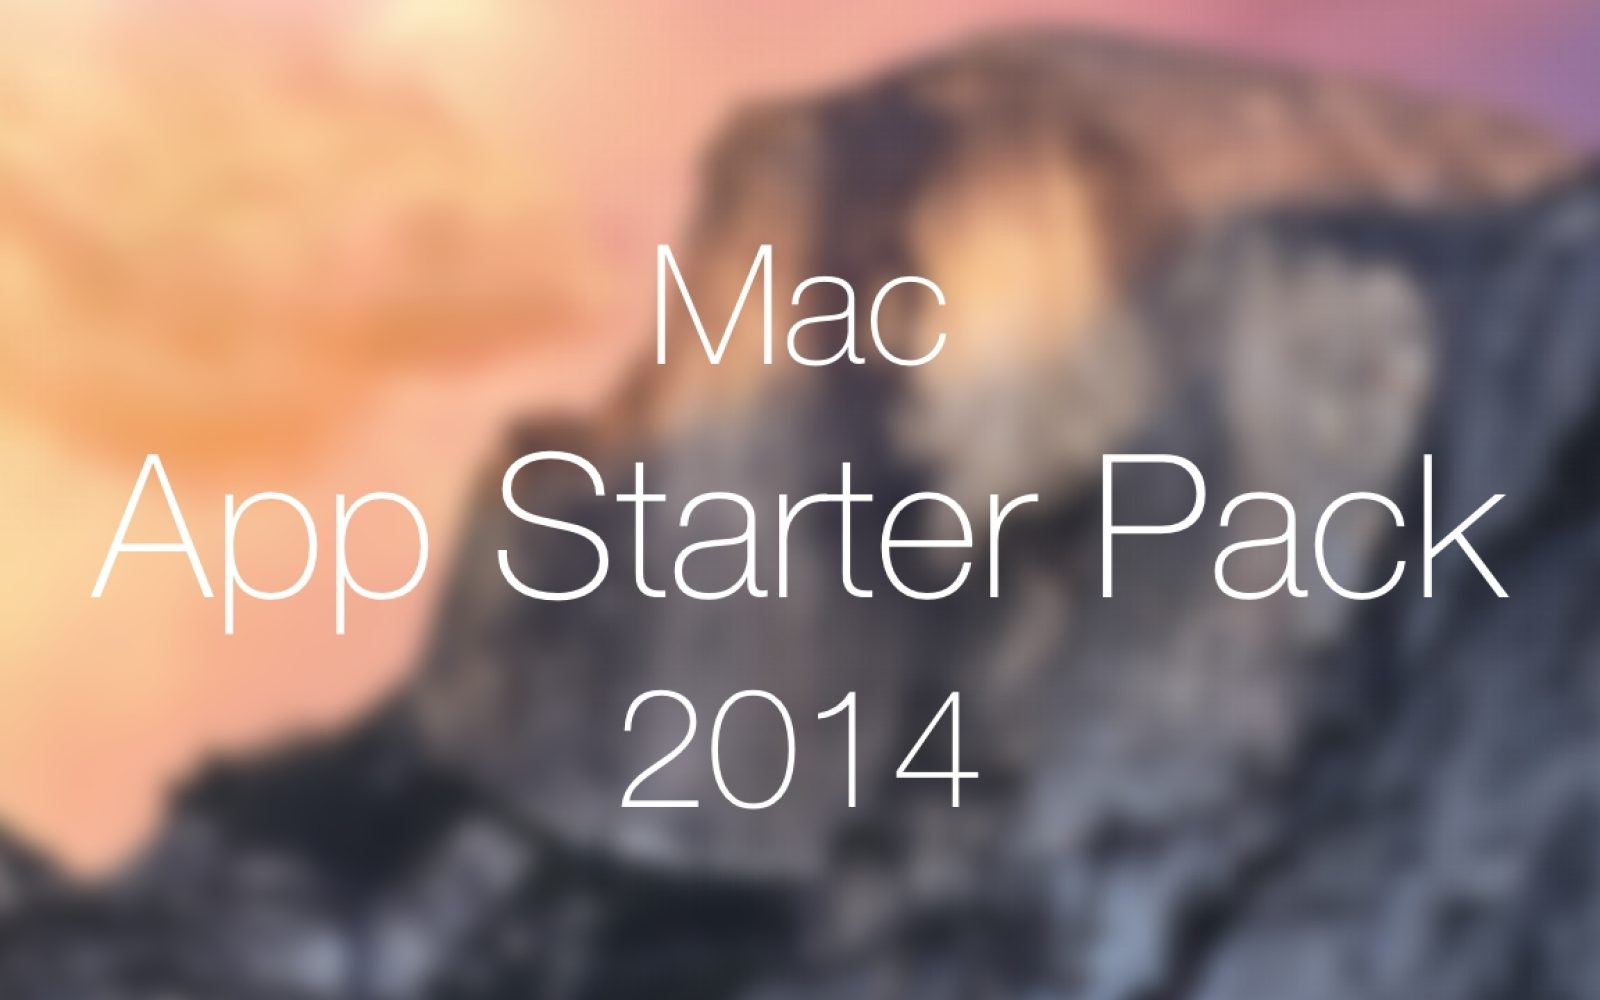 Mac Starter Pack: unleash your iTunes gift card and upgrade your Mac with these great apps